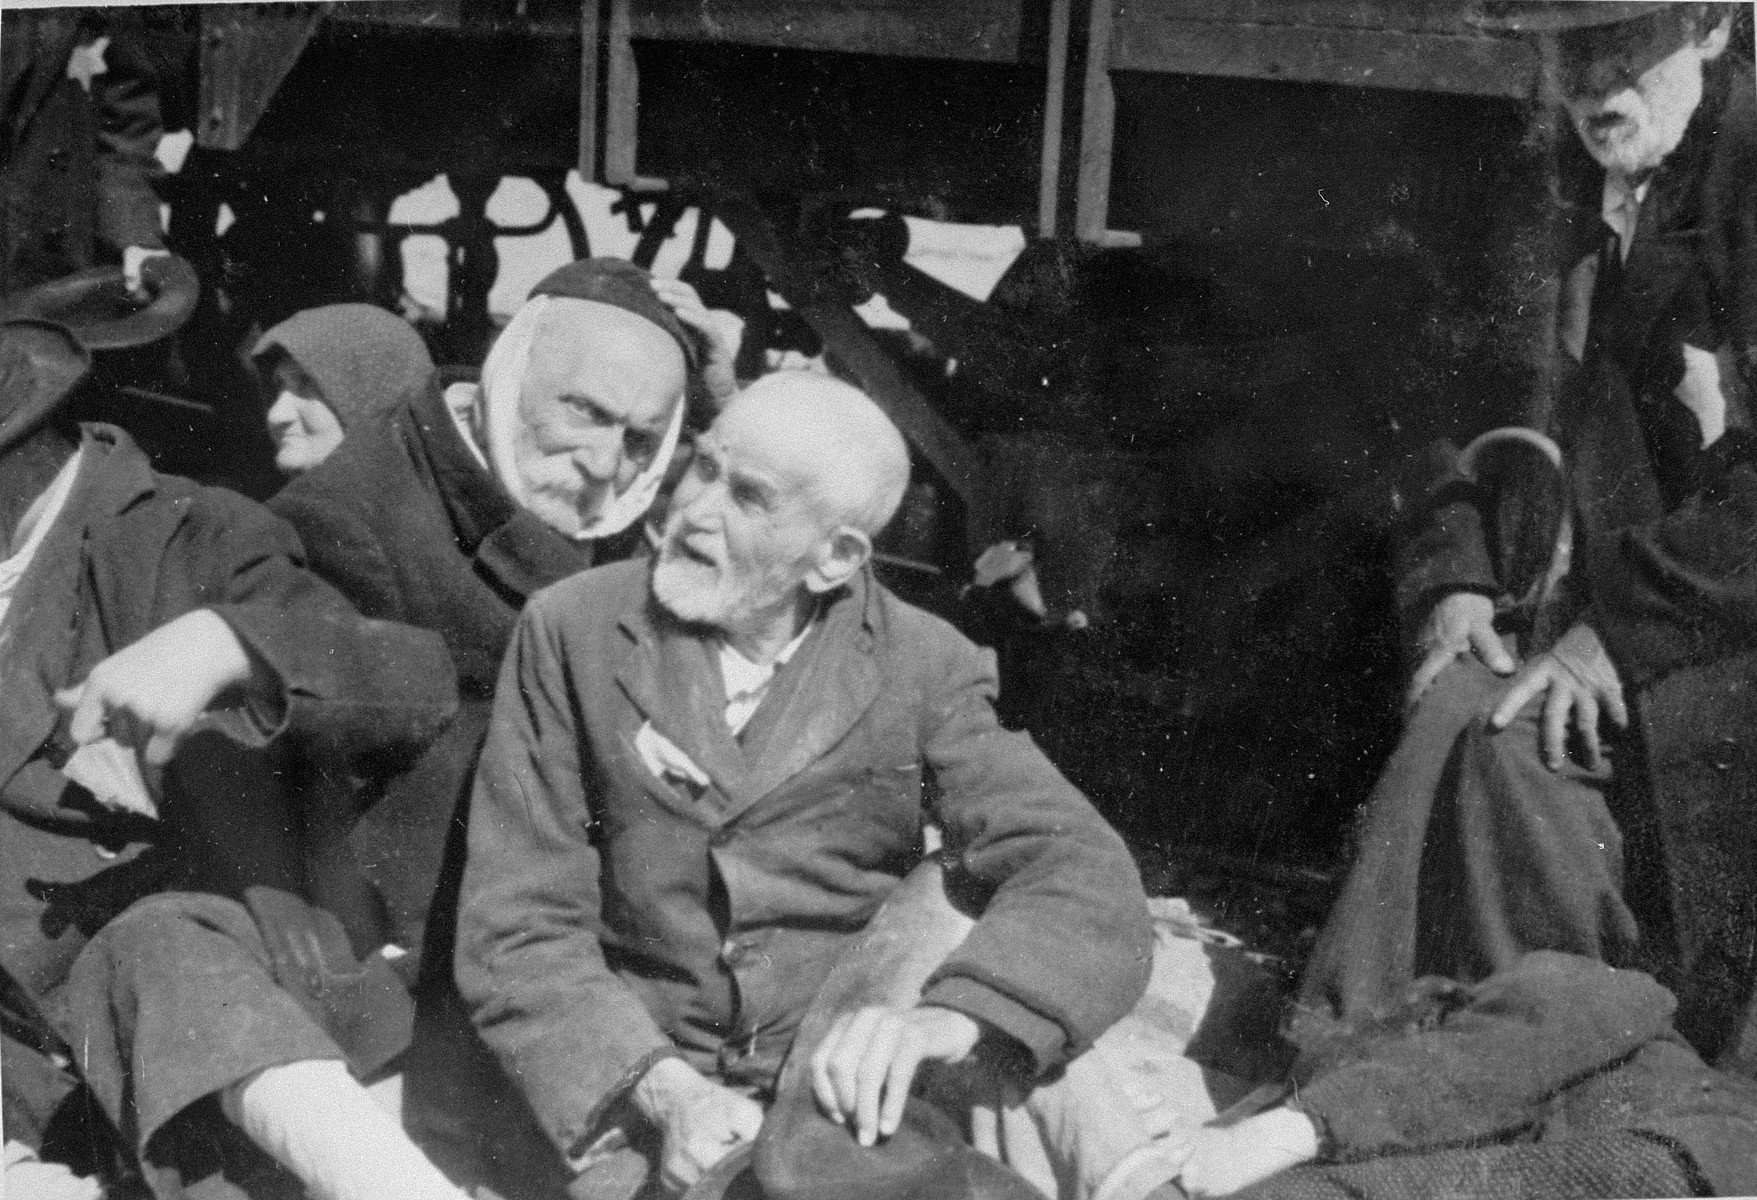 Elderly Jewish men from Subcarpathian Rus sit next to a railcar in Auschwitz-Birkenau prior to being sent to the gas chambers.   One of the men wears a scarf to cover his shaven face.  The man on the far right is Lili Jacob's paternal grandfather.